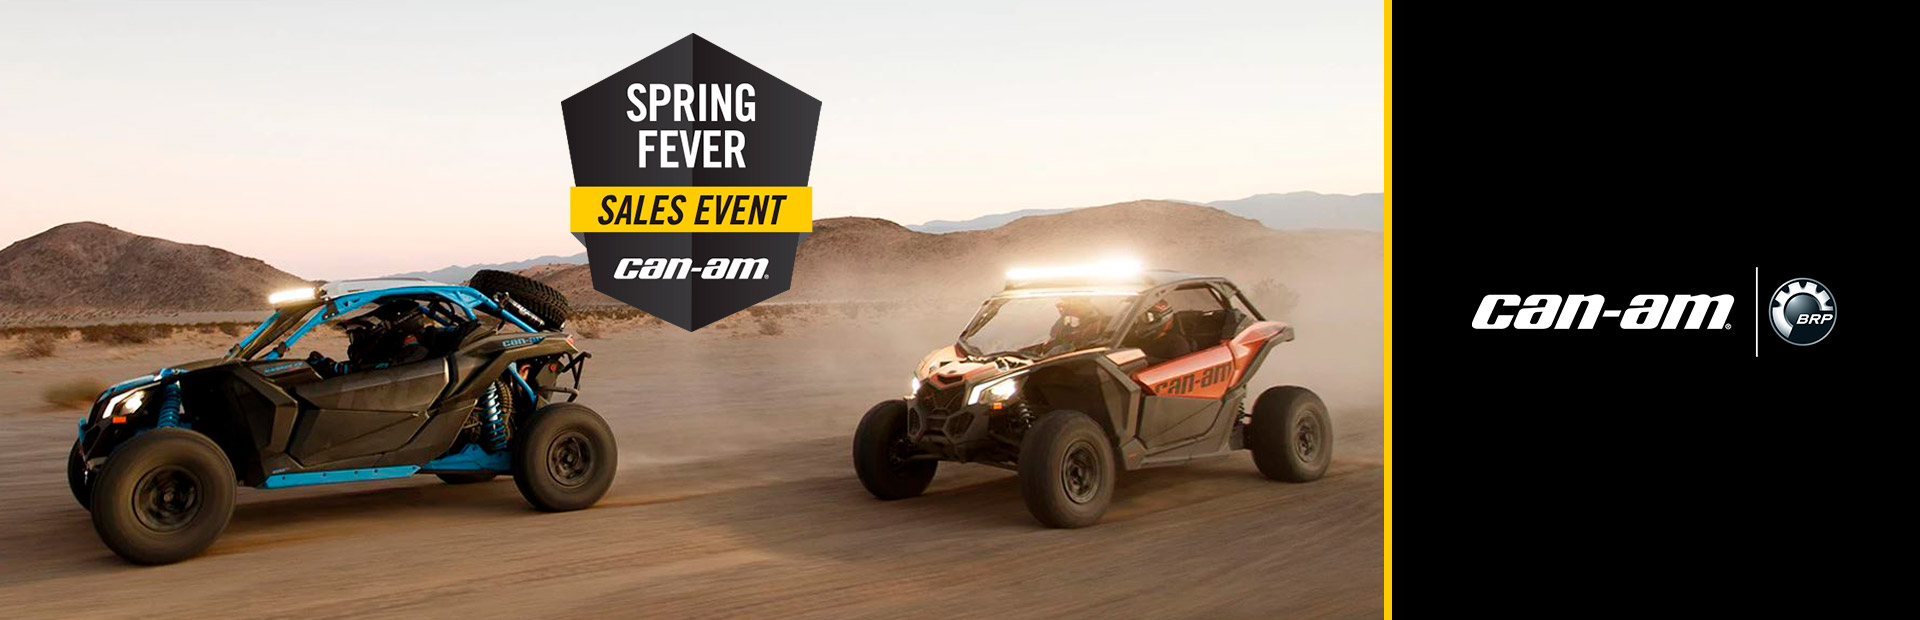 Can-Am: Spring Fever Sales Event-Maverick X3